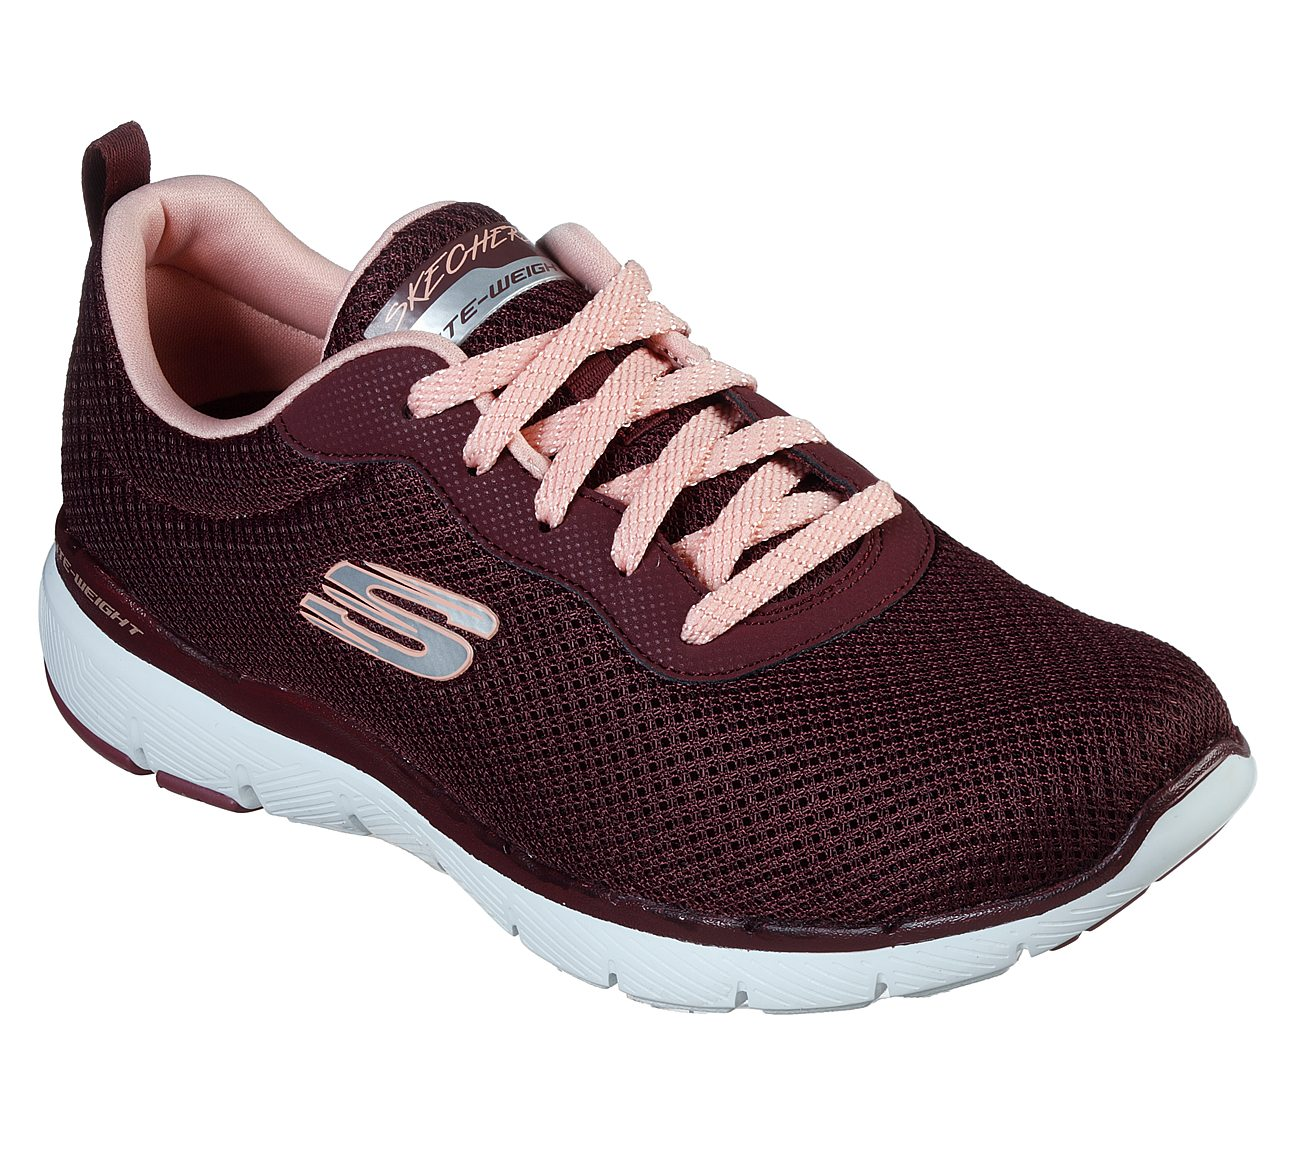 e4e06869a04 Buy SKECHERS Flex Appeal 3.0 - First Insight Flex Appeal Shoes only ...